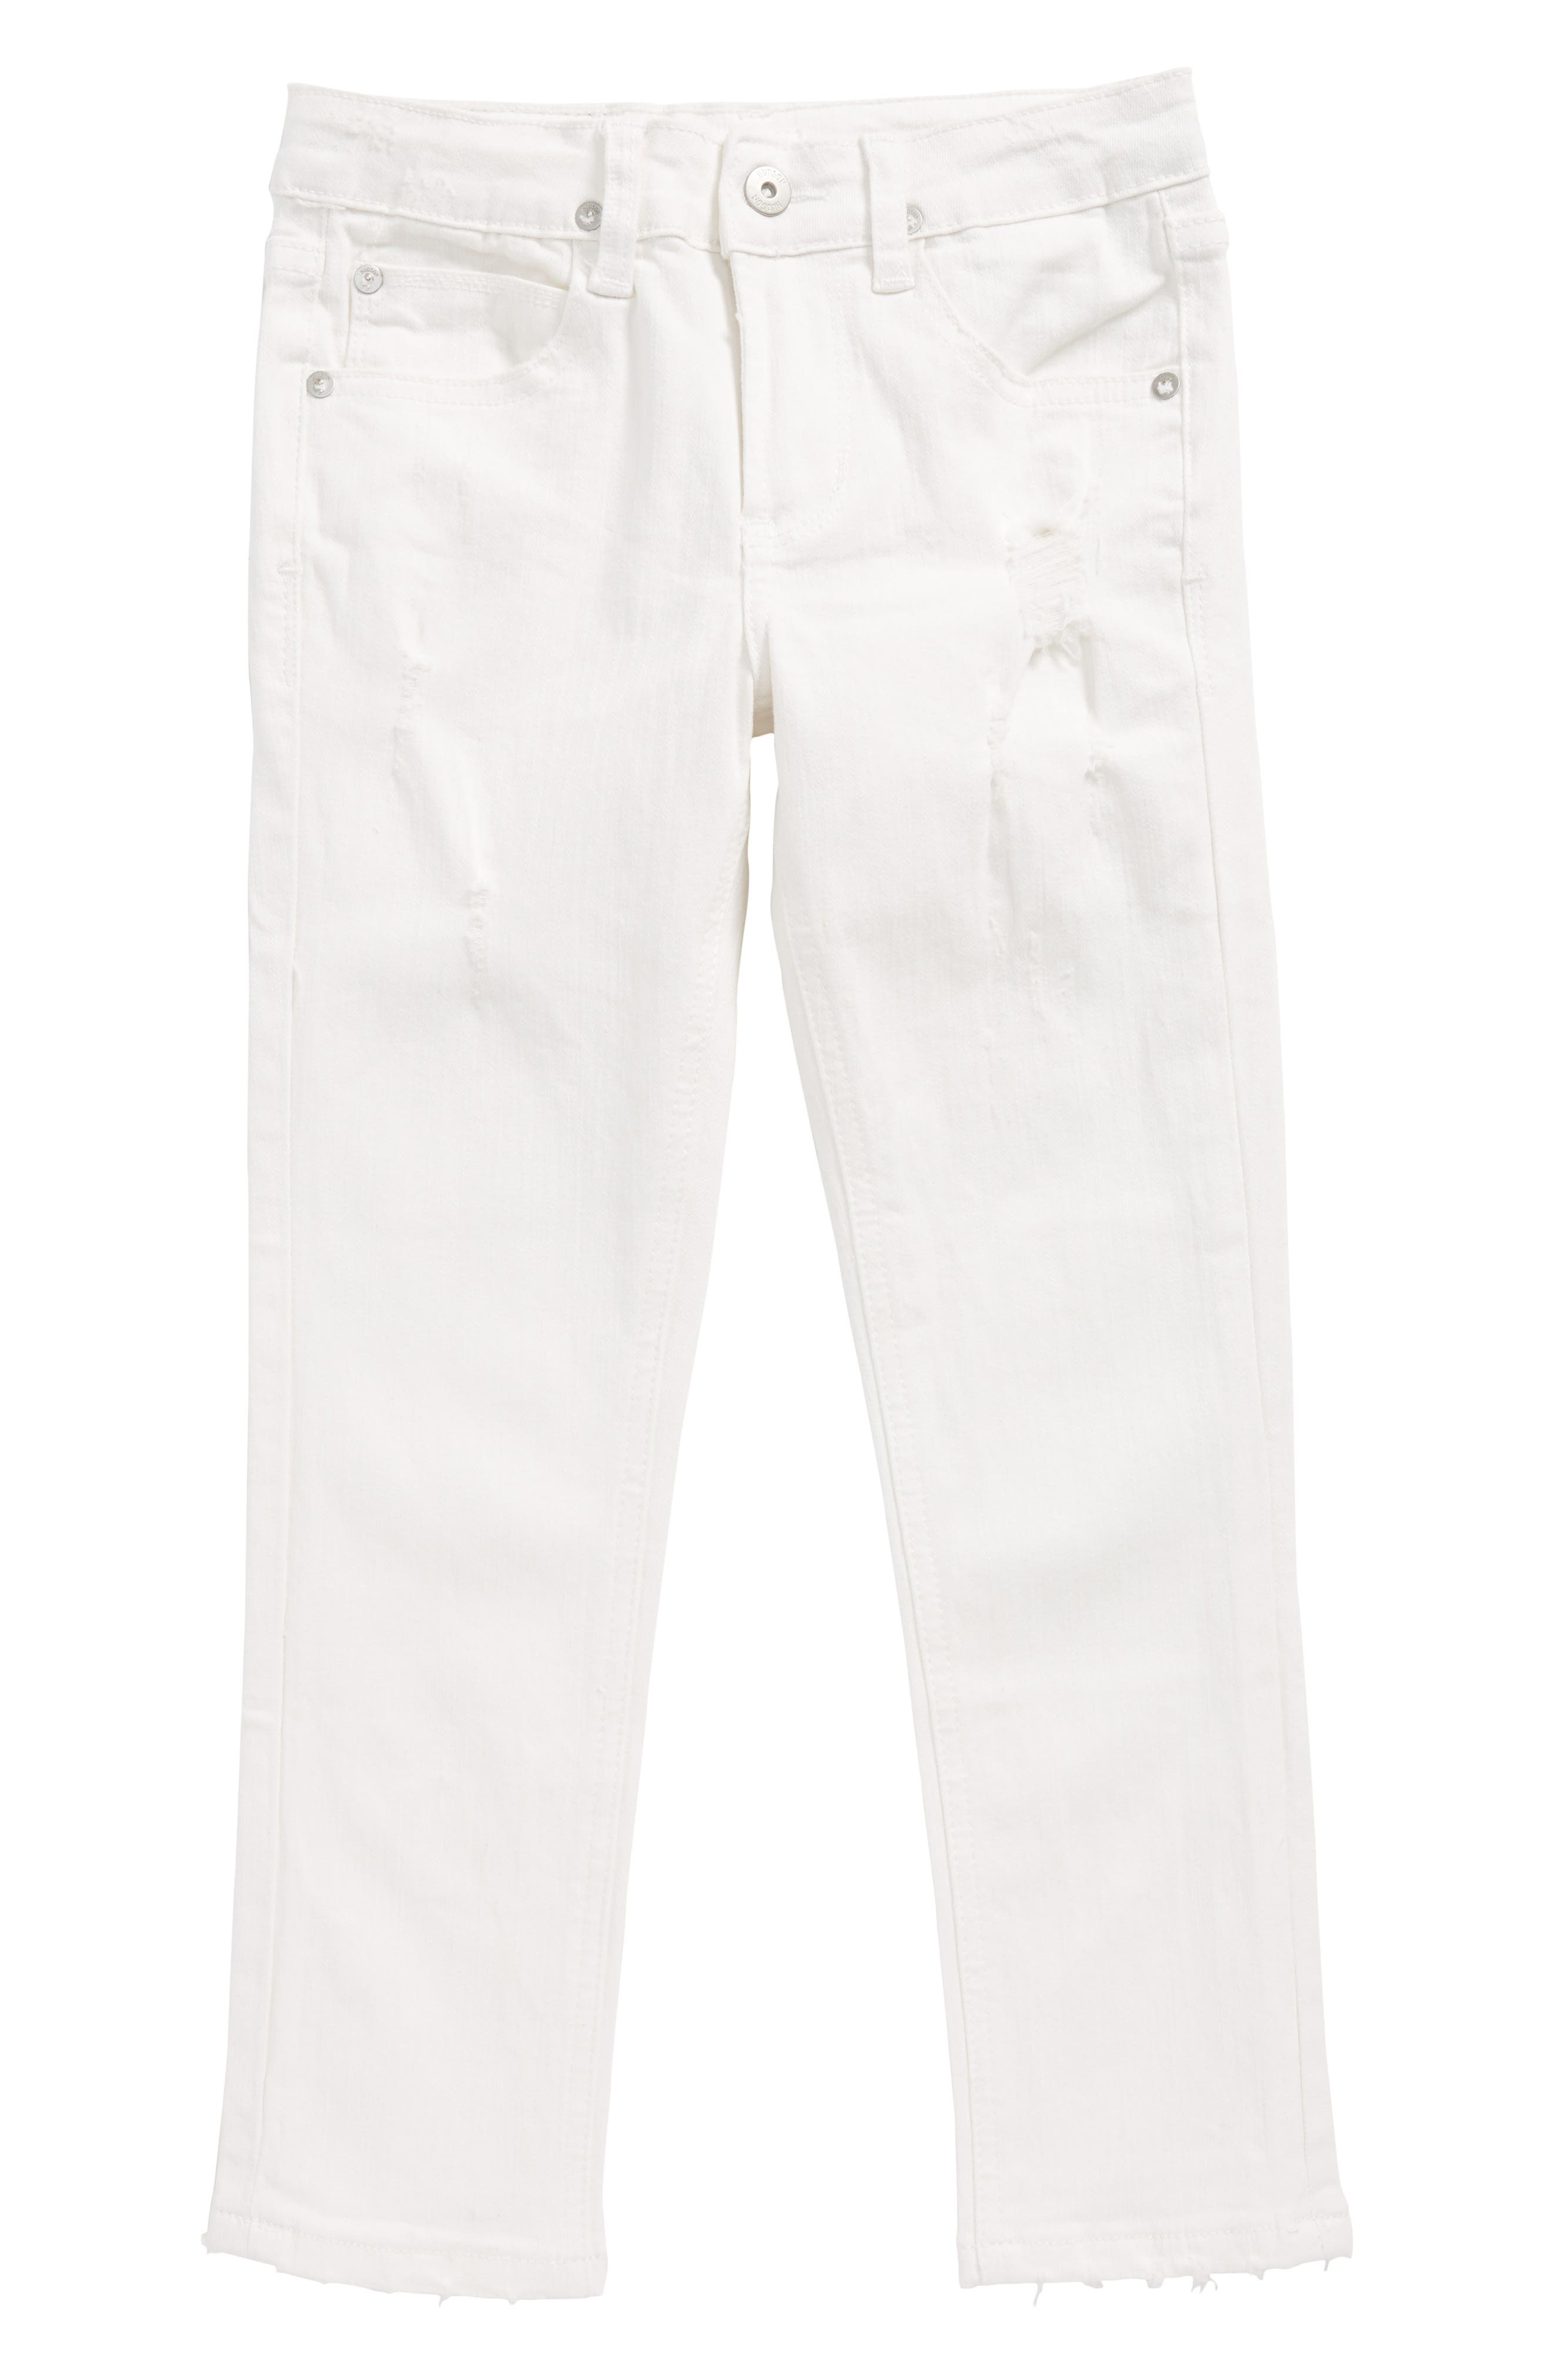 Jagger Slim Straight Leg Jeans,                         Main,                         color, Washed Out